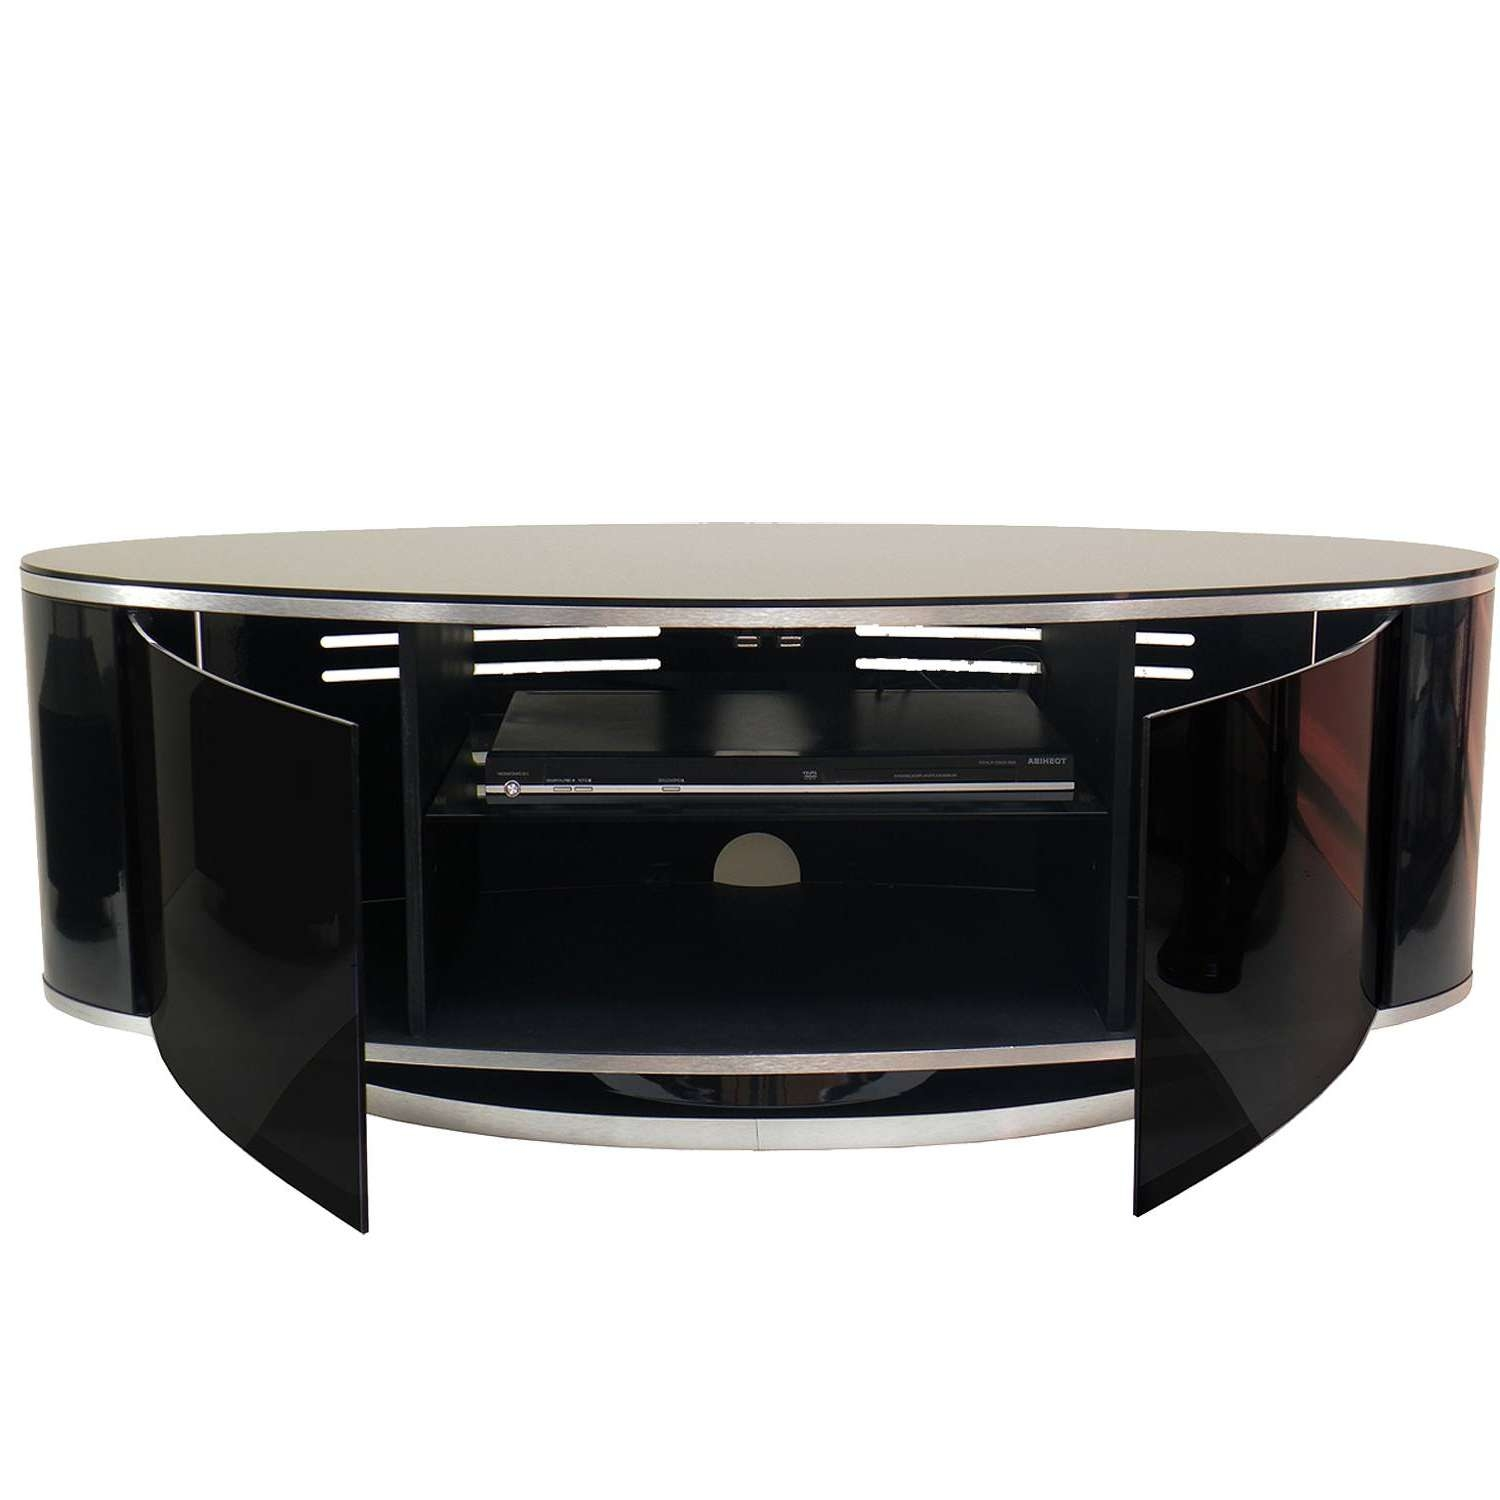 "Mda Designs Luna Av High Gloss Black Oval Tv Cabinet Up To 55"" Tvs For Tv Cabinets Black High Gloss (View 18 of 20)"